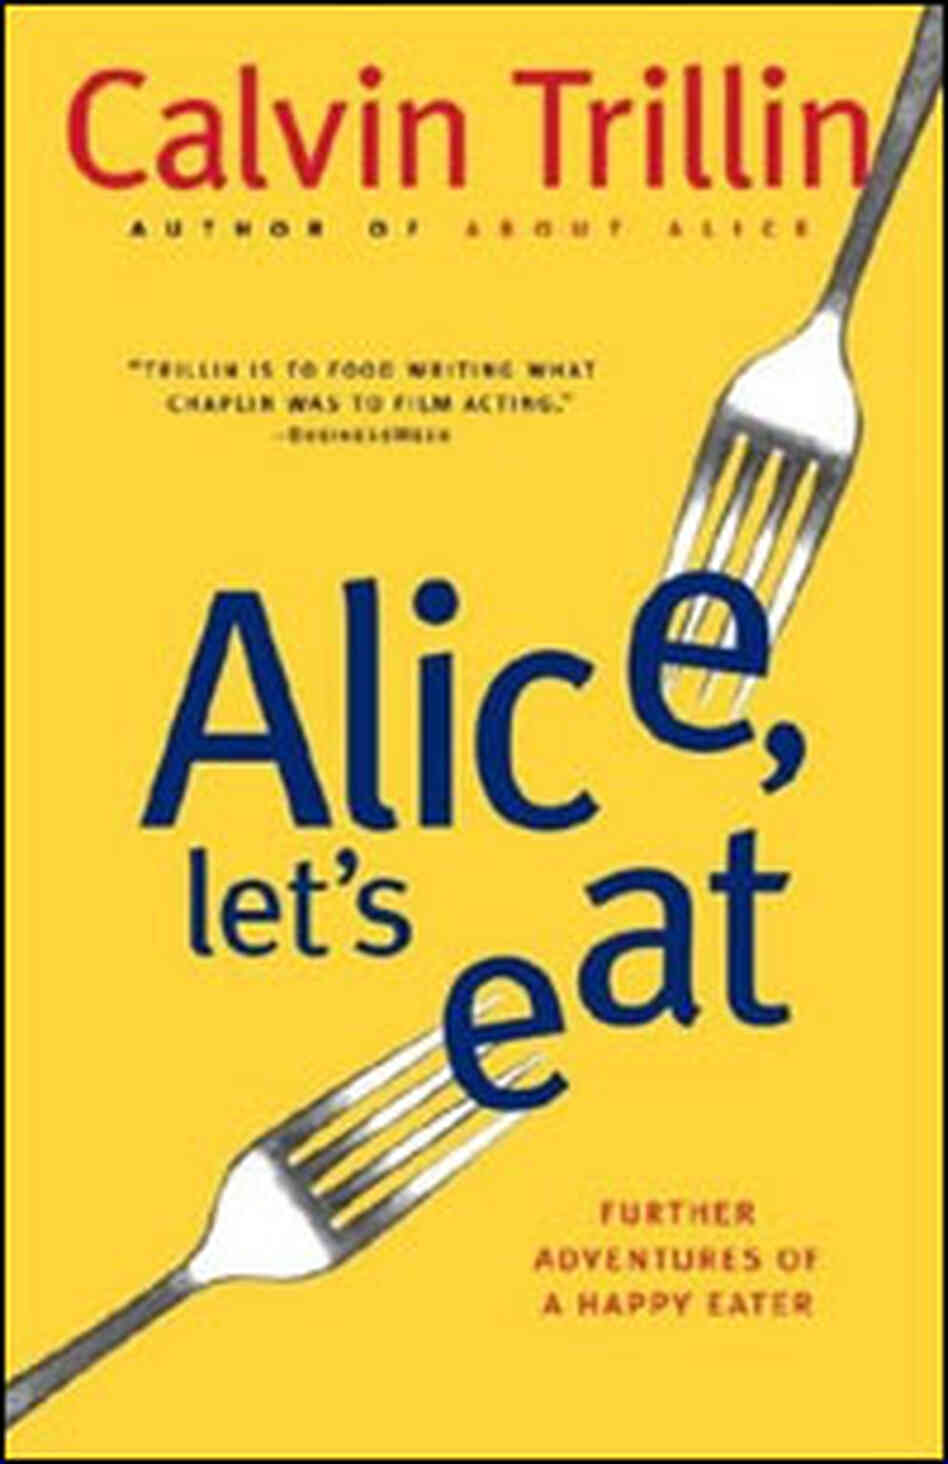 Alice Let's Eat